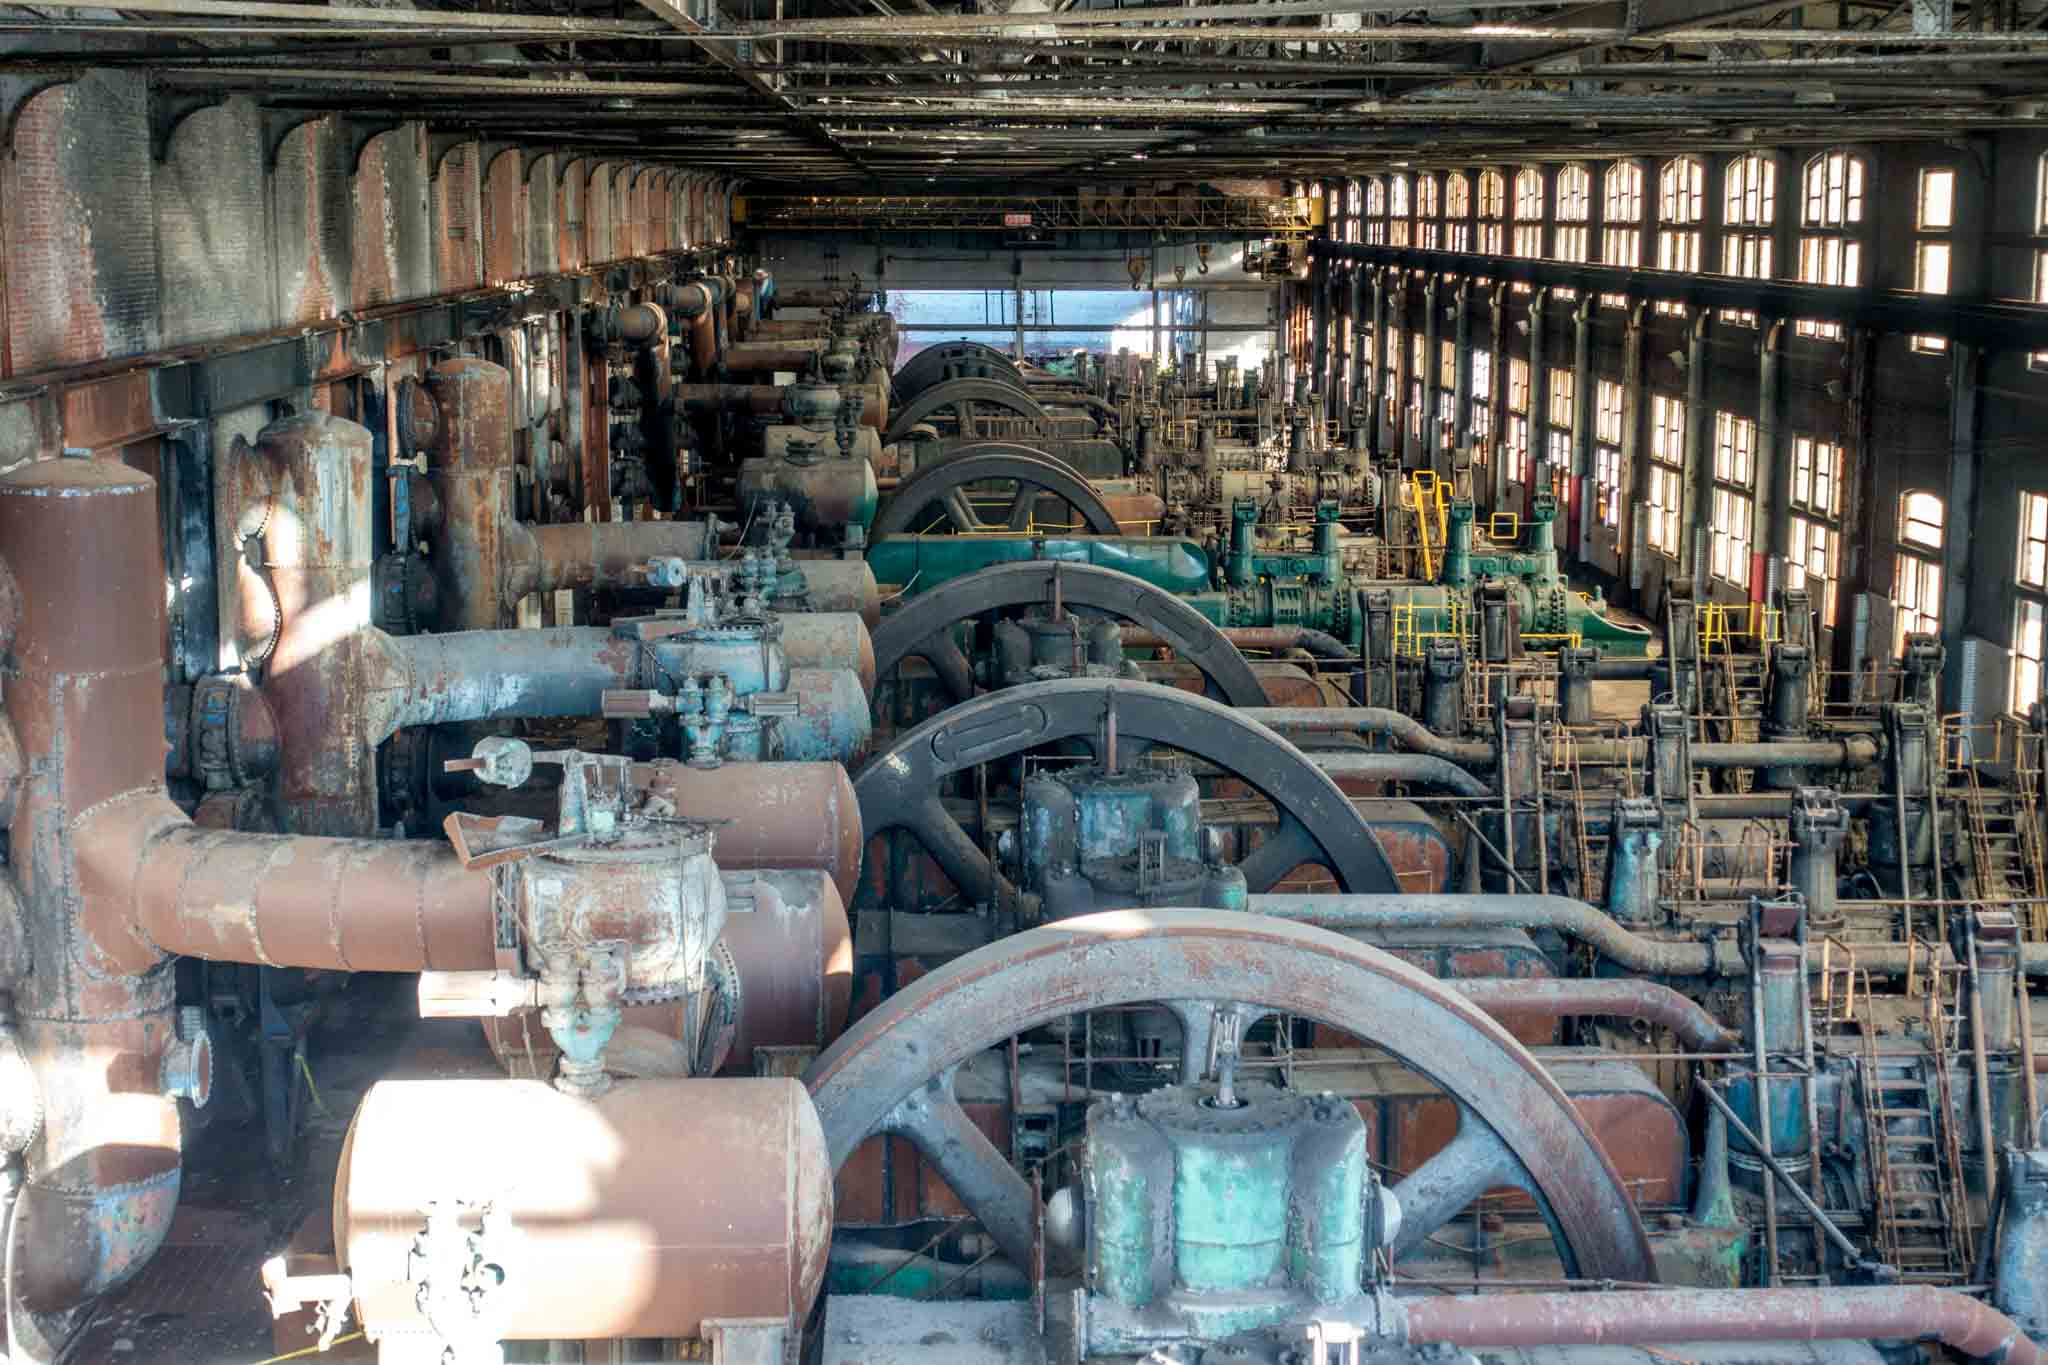 The massive blowing engines at the Steel Stacks in Bethlehem PA